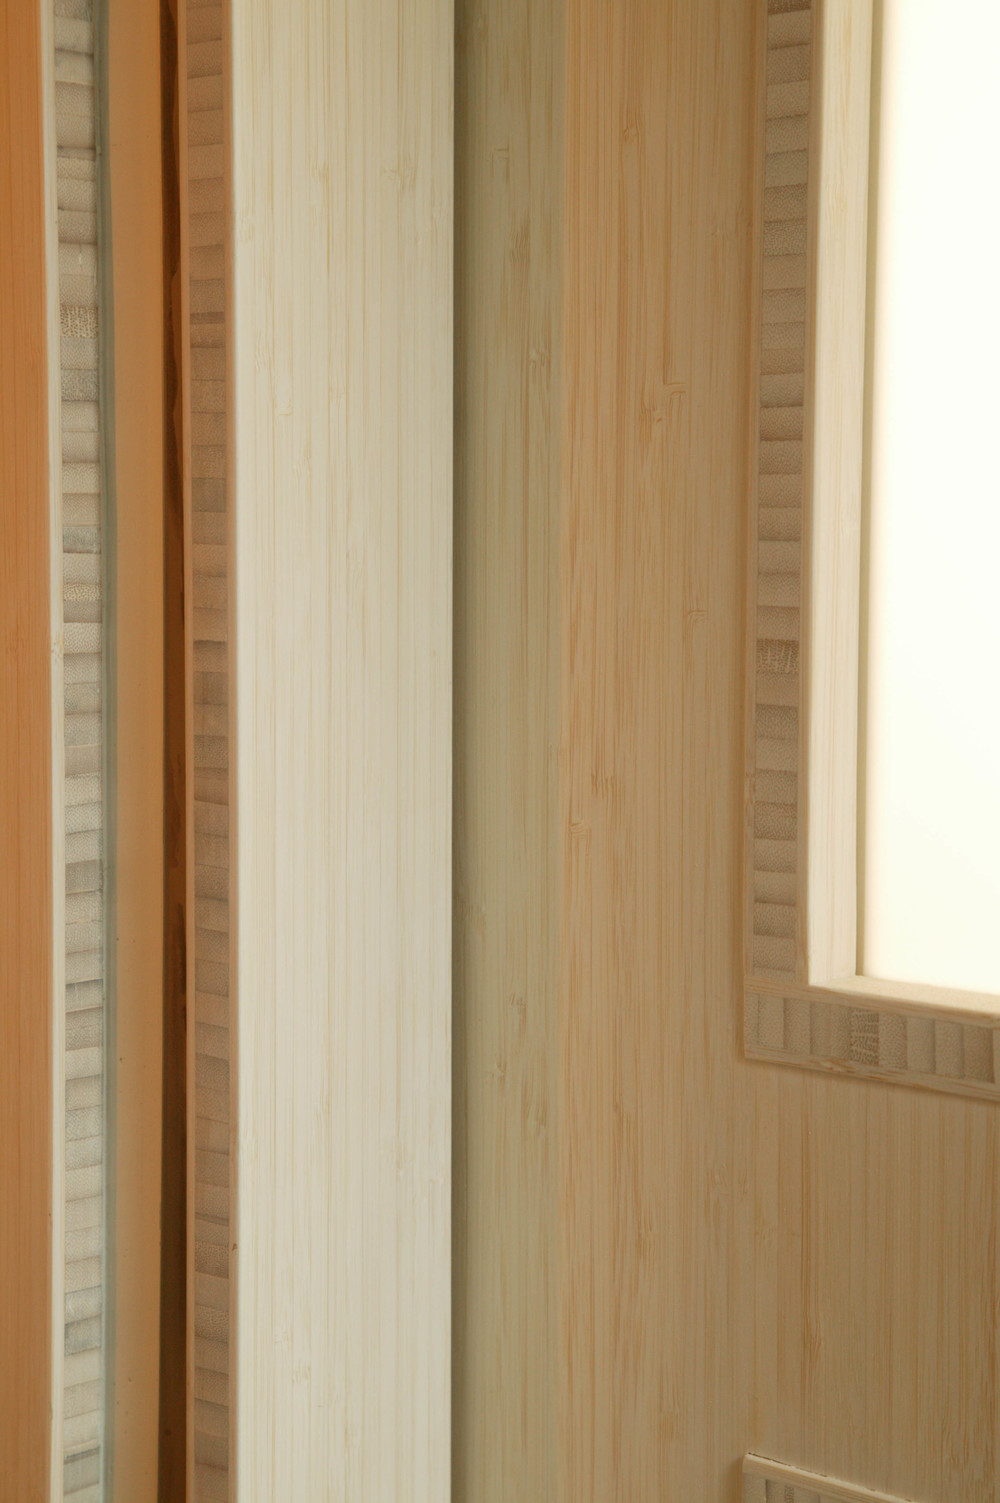 Bamboo door detail.jpg